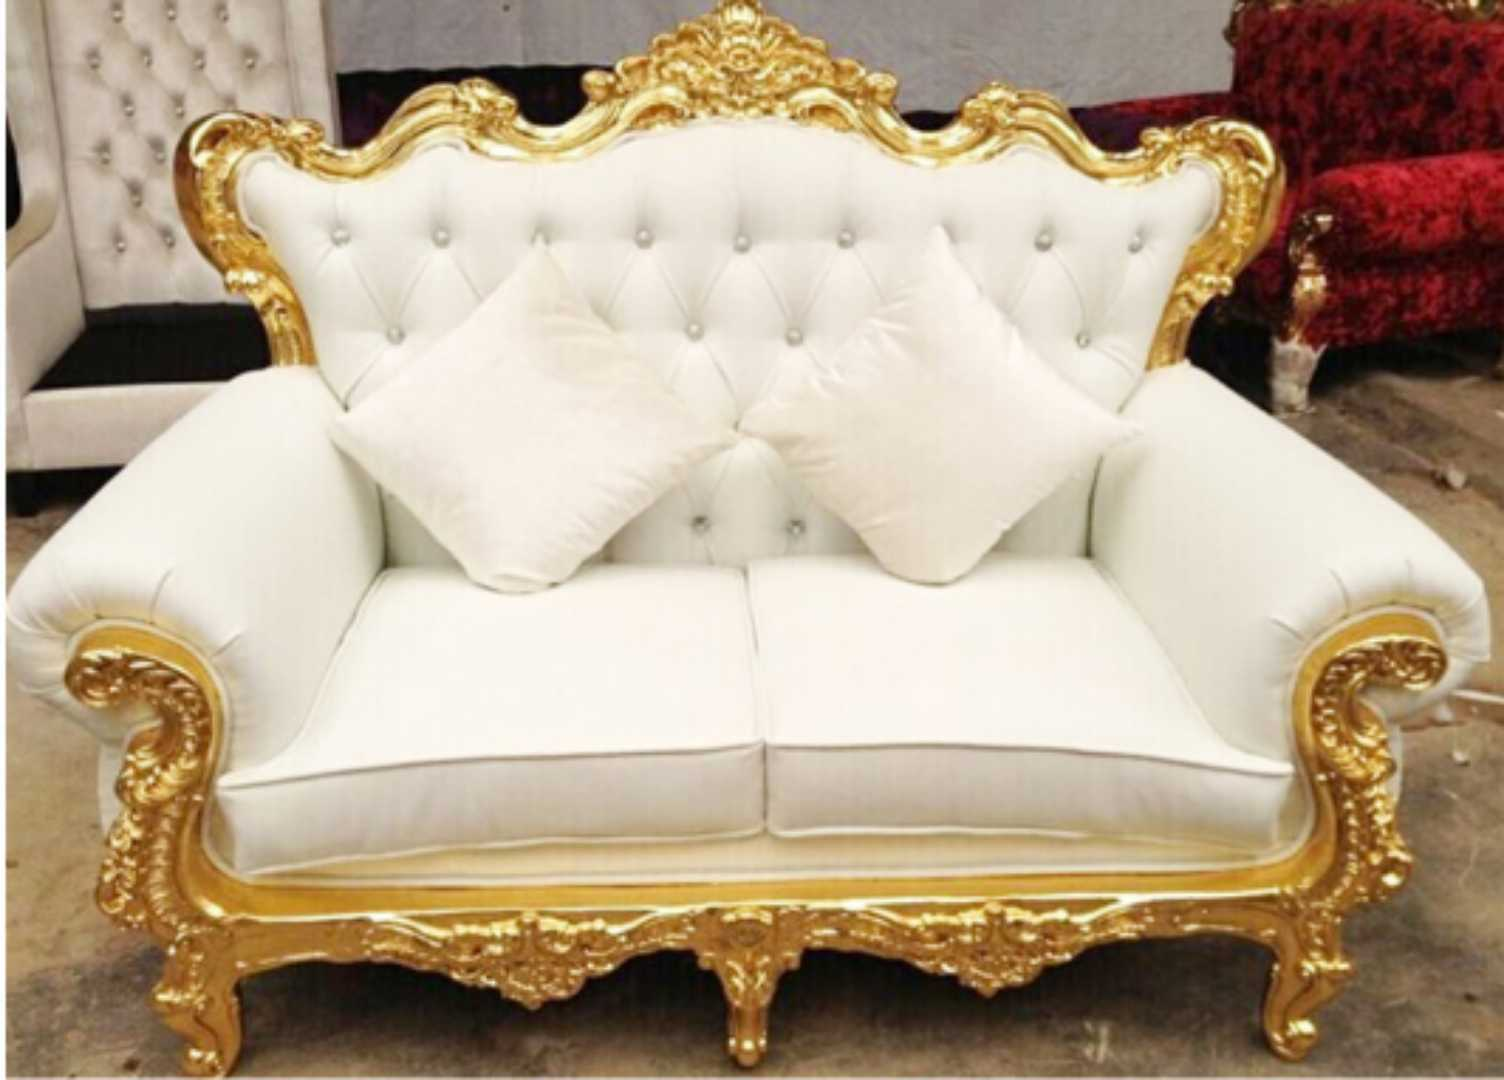 Super Hot Item Royal Wedding Used Chairs Wedding Sofa Bralicious Painted Fabric Chair Ideas Braliciousco